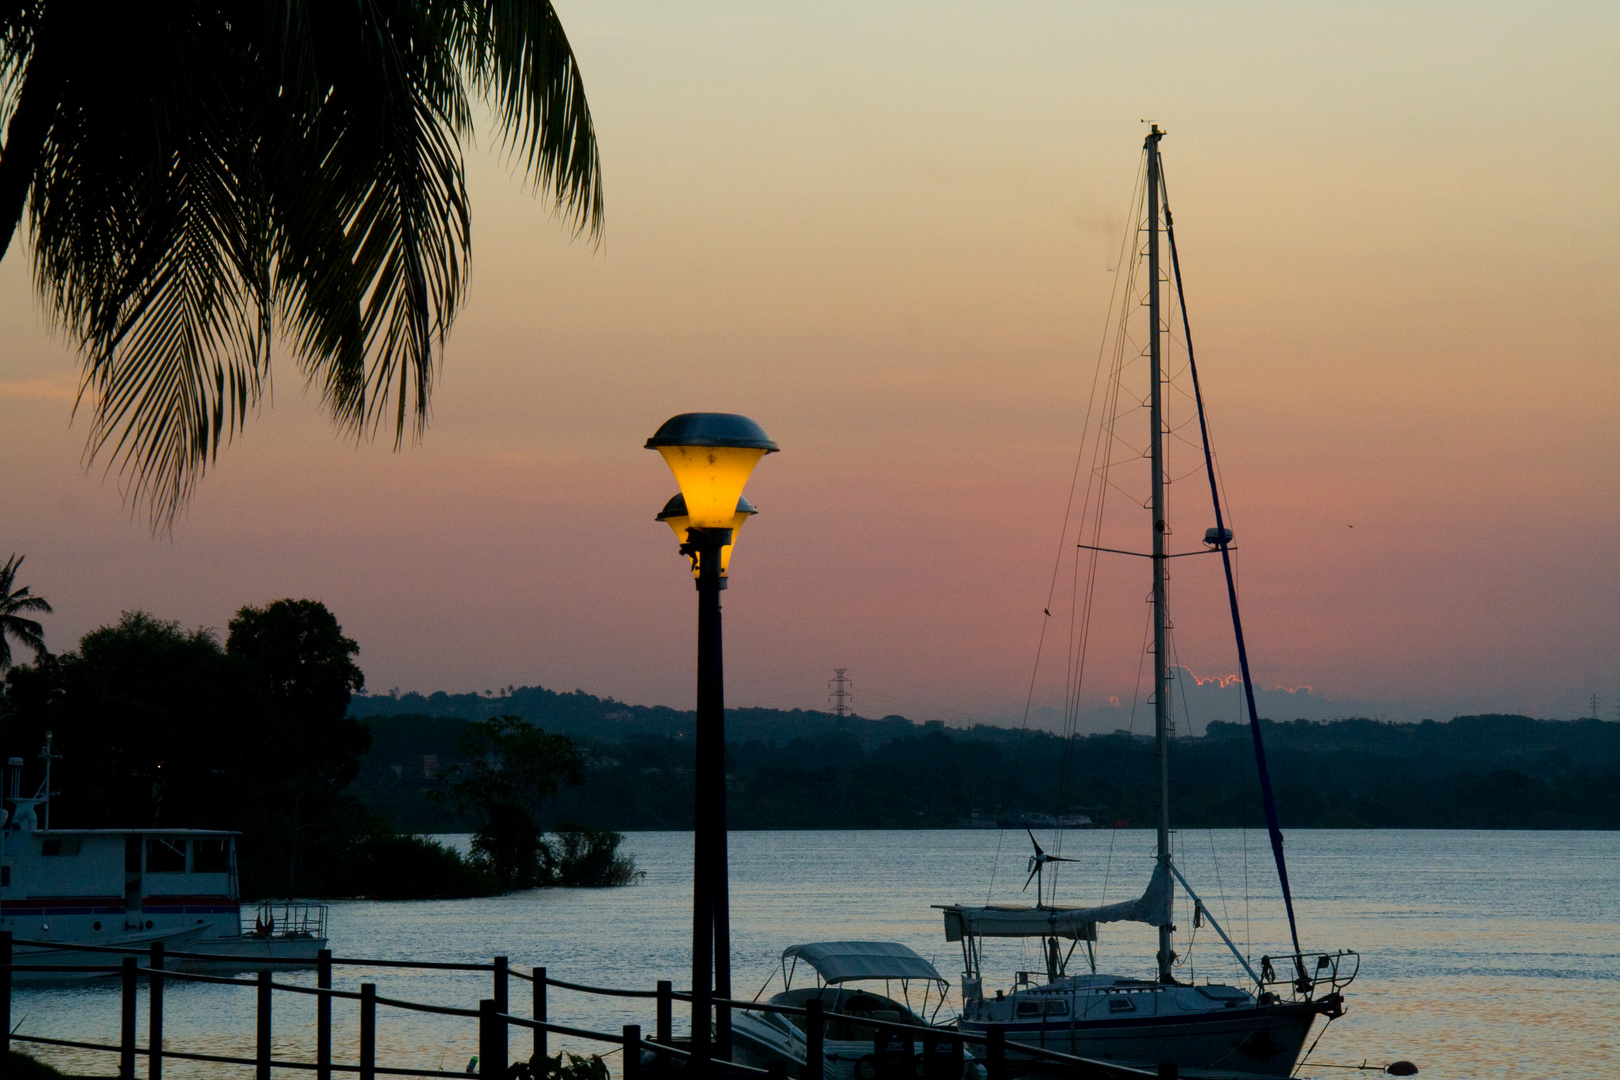 SUNSET IN THE CARONI